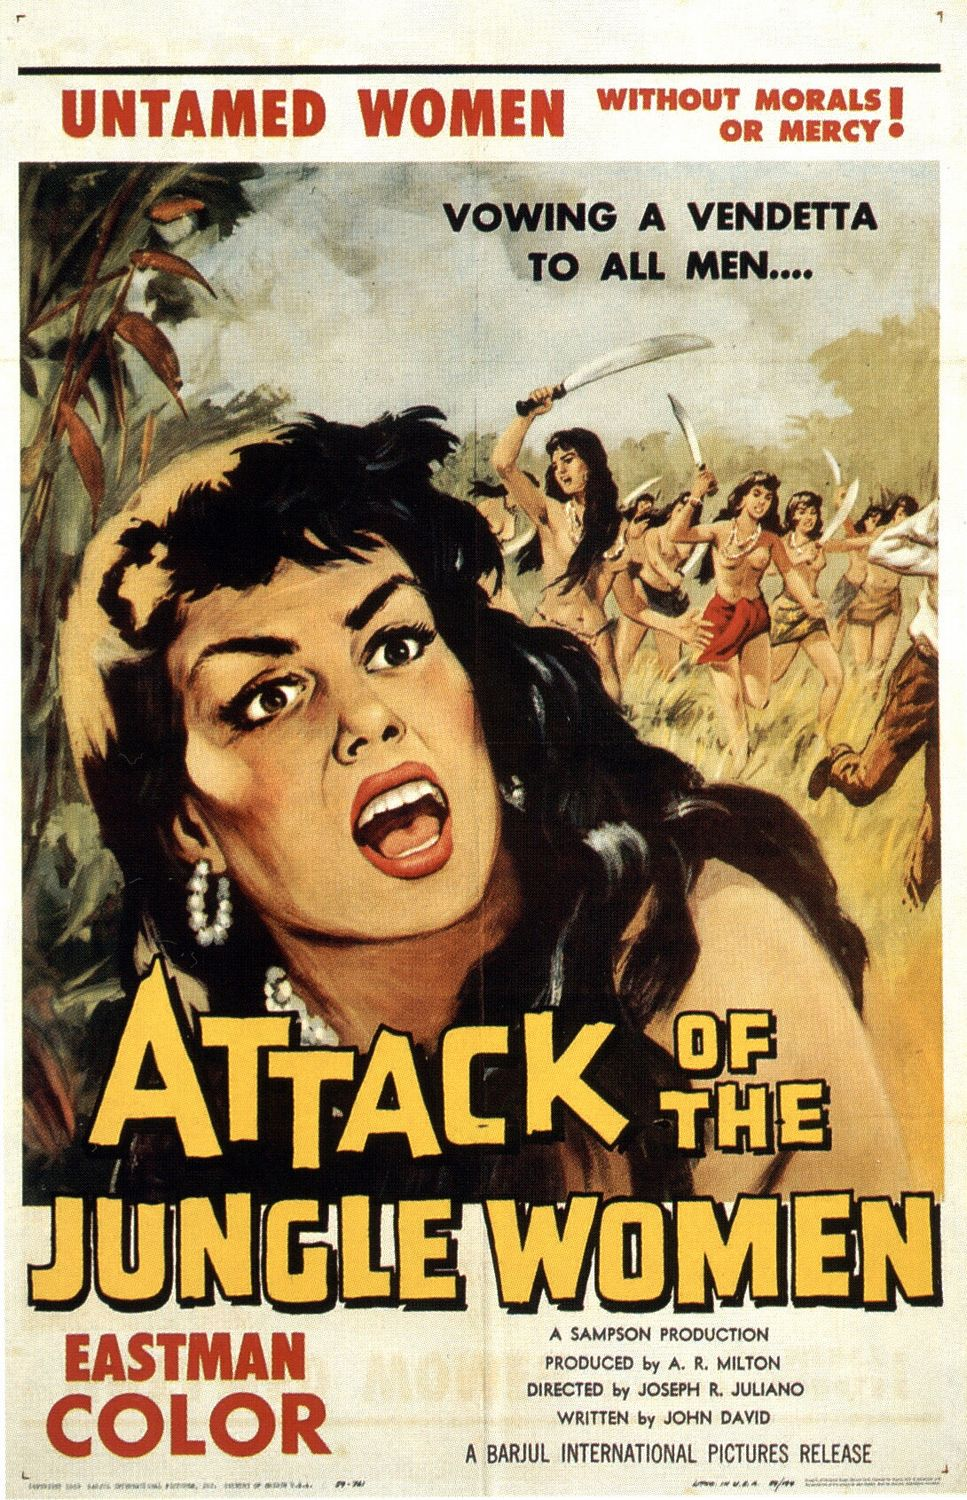 Extra Large Movie Poster Image for Attack of the Jungle Women